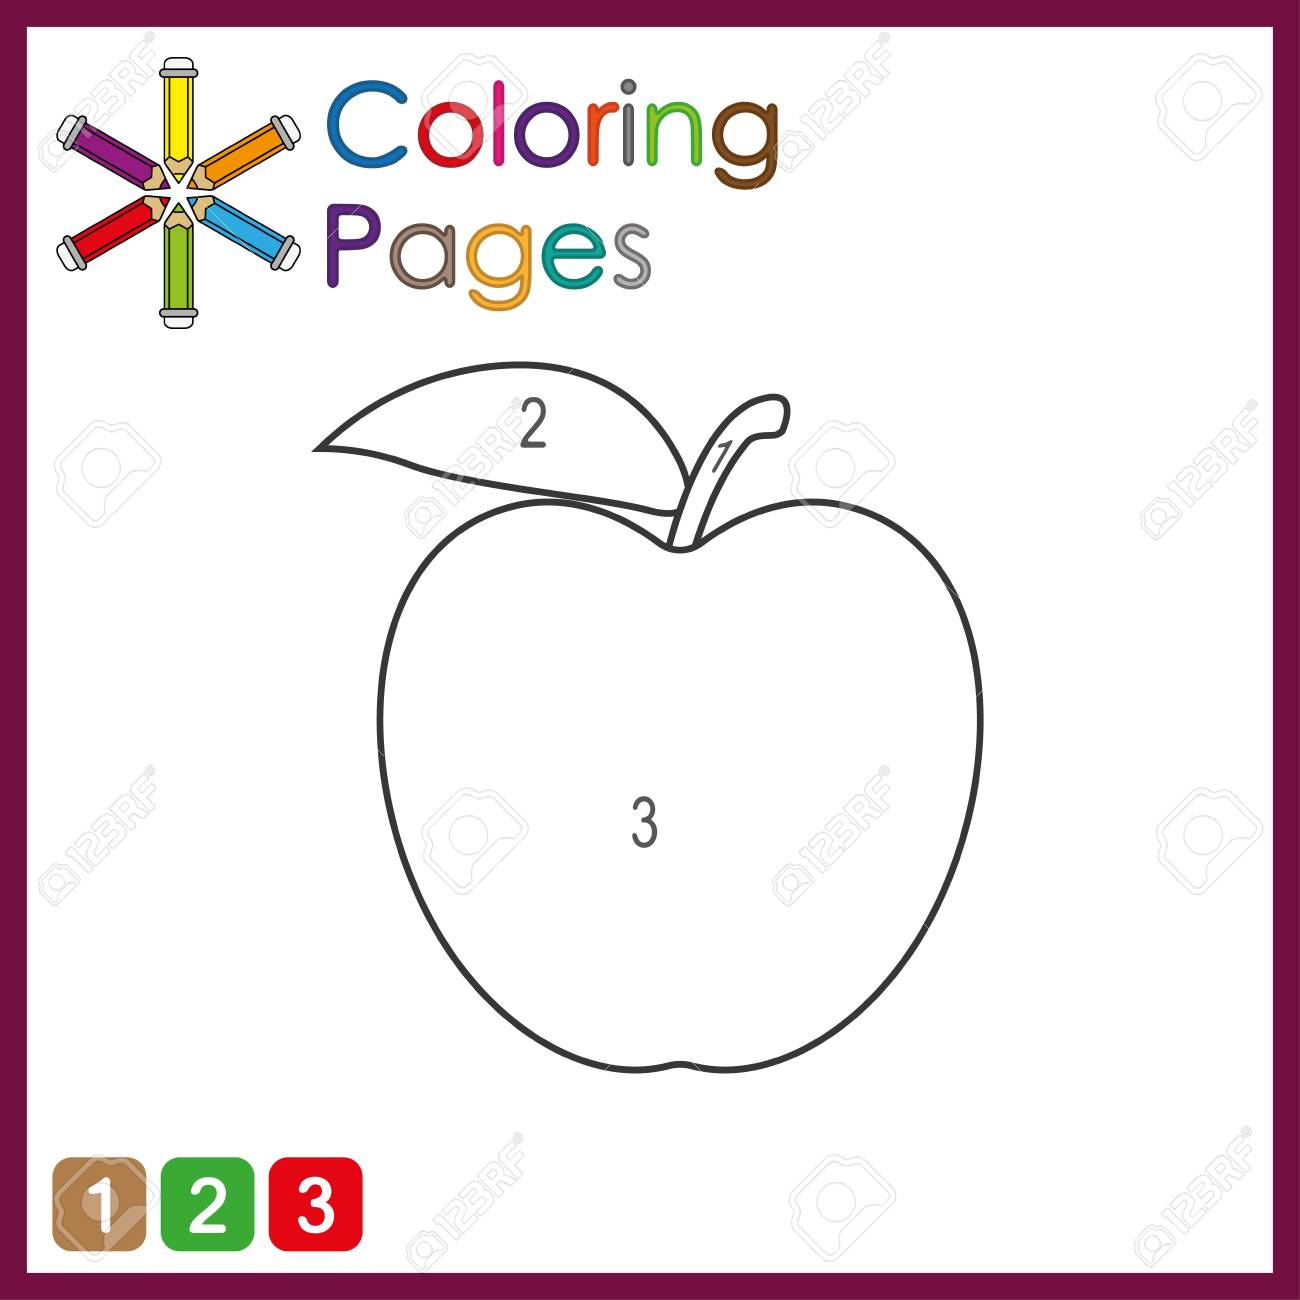 coloring page for kids, color the parts of the object according to numbers, color by numbers, activity pages - 122858952